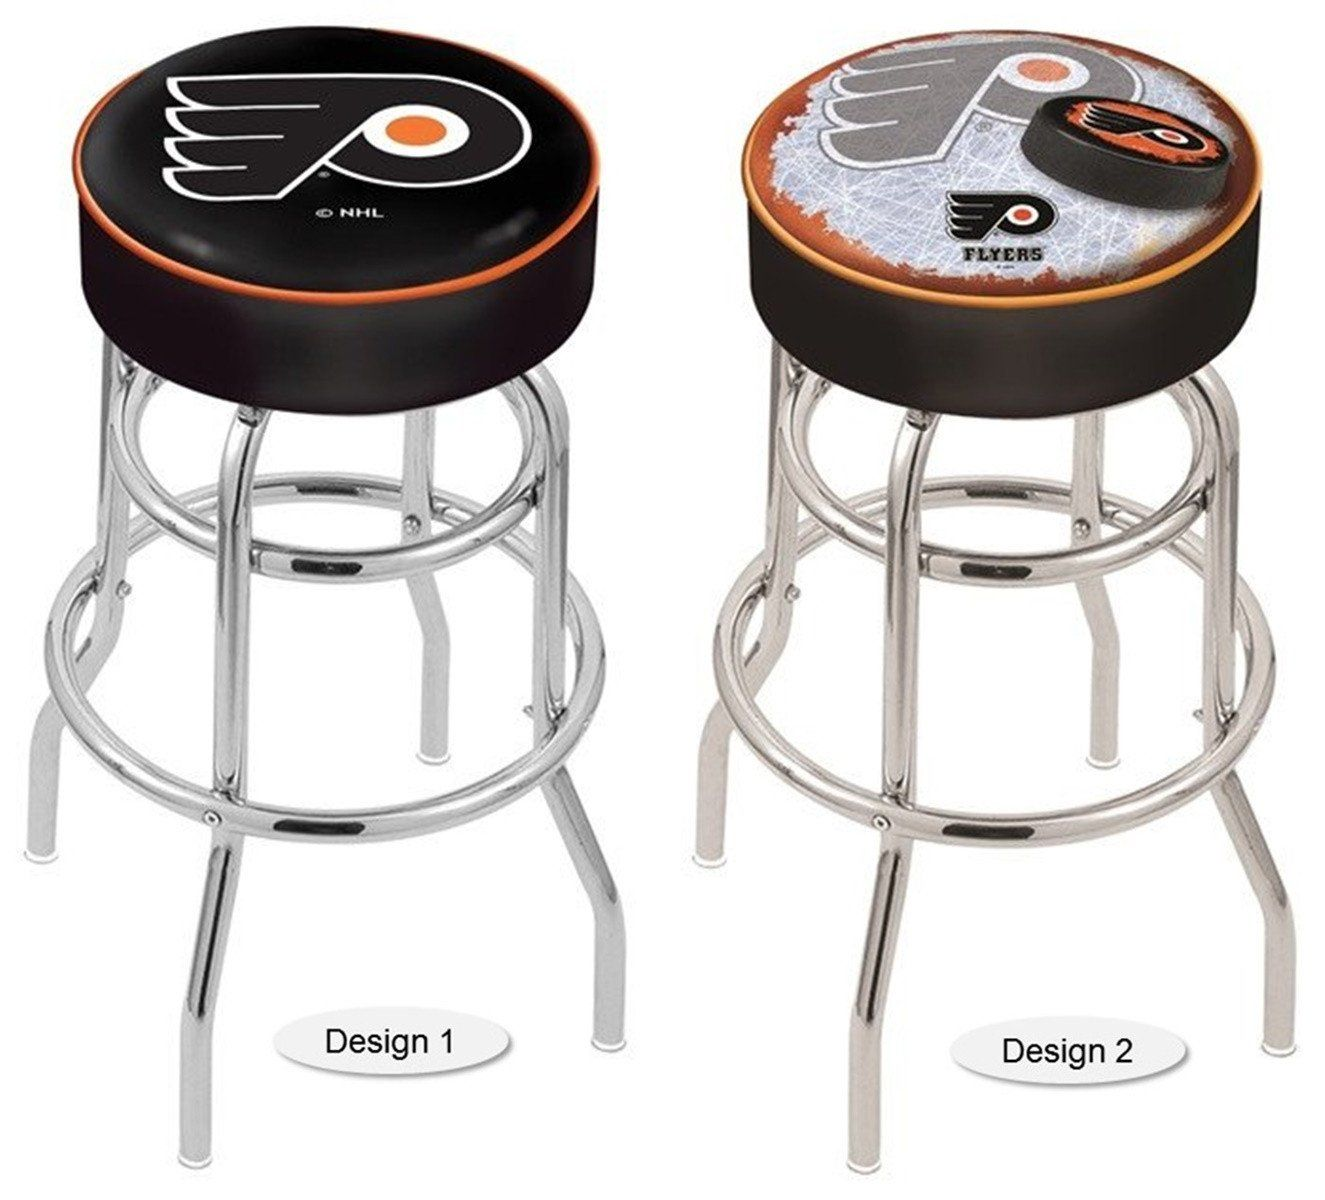 Philadelphia Flyers Black Nhl Retro Chrome Bar Stool